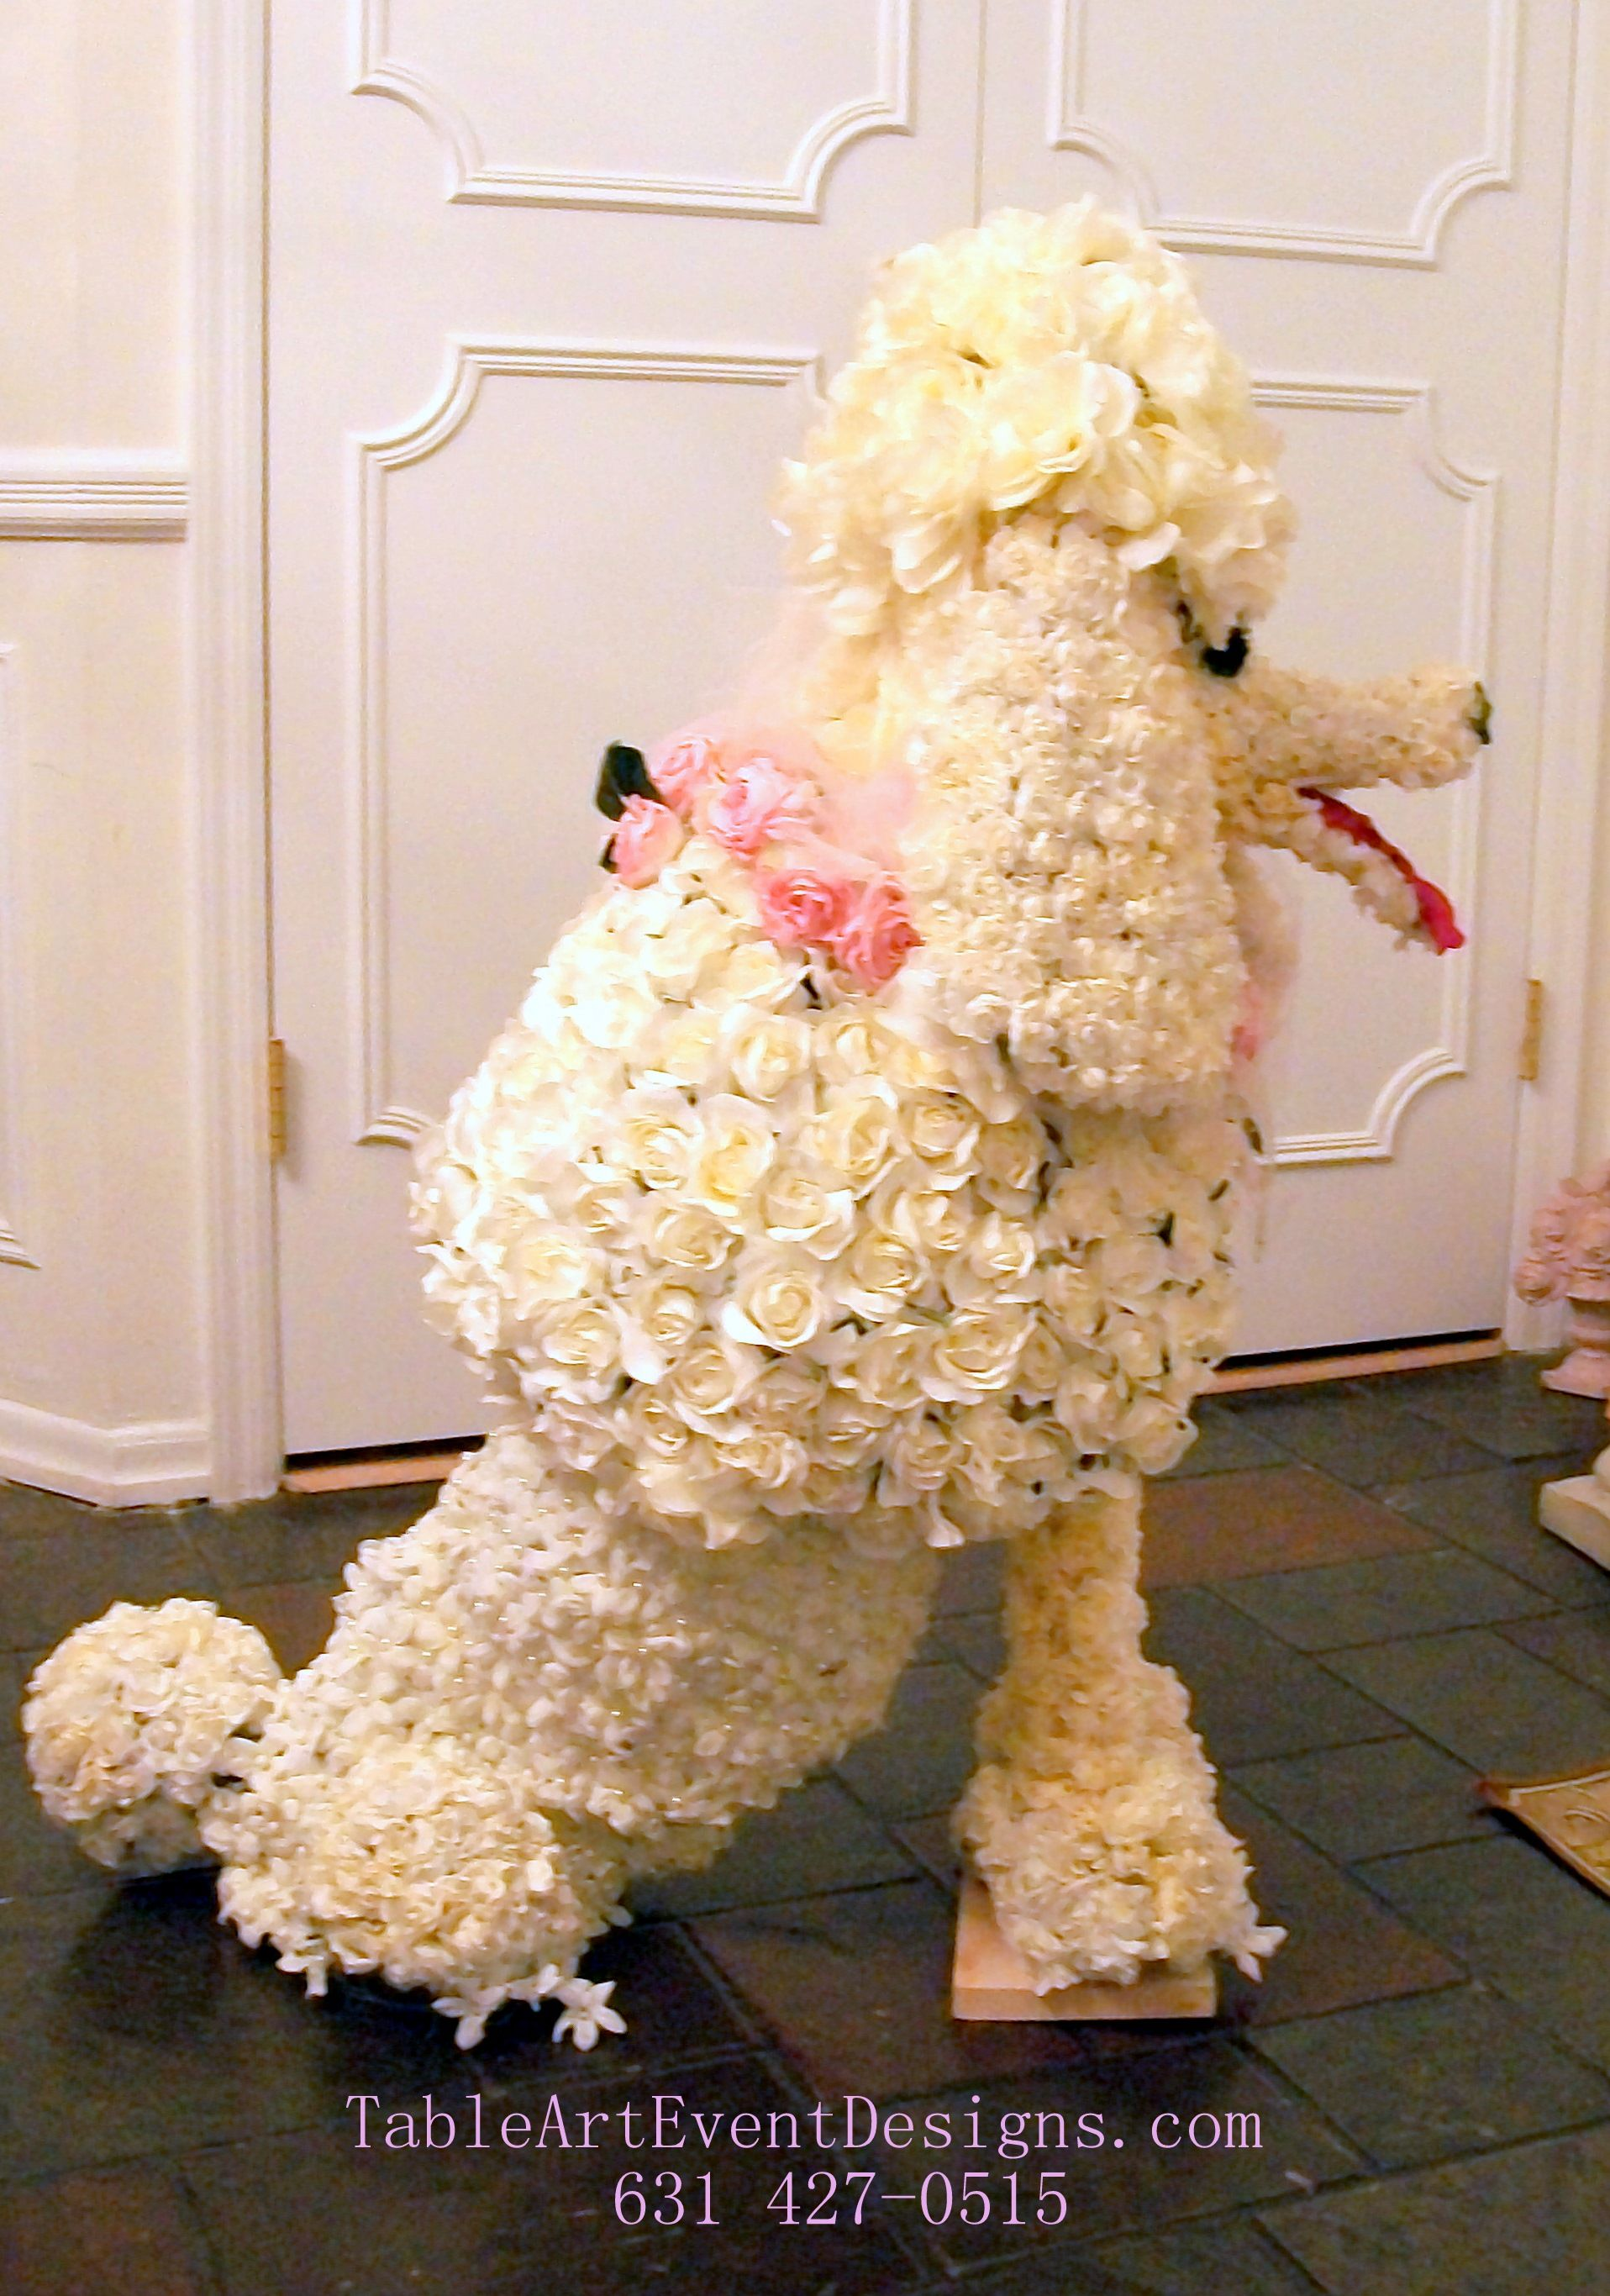 Pin by alexis marie mancini on parties pinterest must figure out how to recreateout of faux flowers to have in lrlibrayart studio floral sculpture of french poodle dog izmirmasajfo